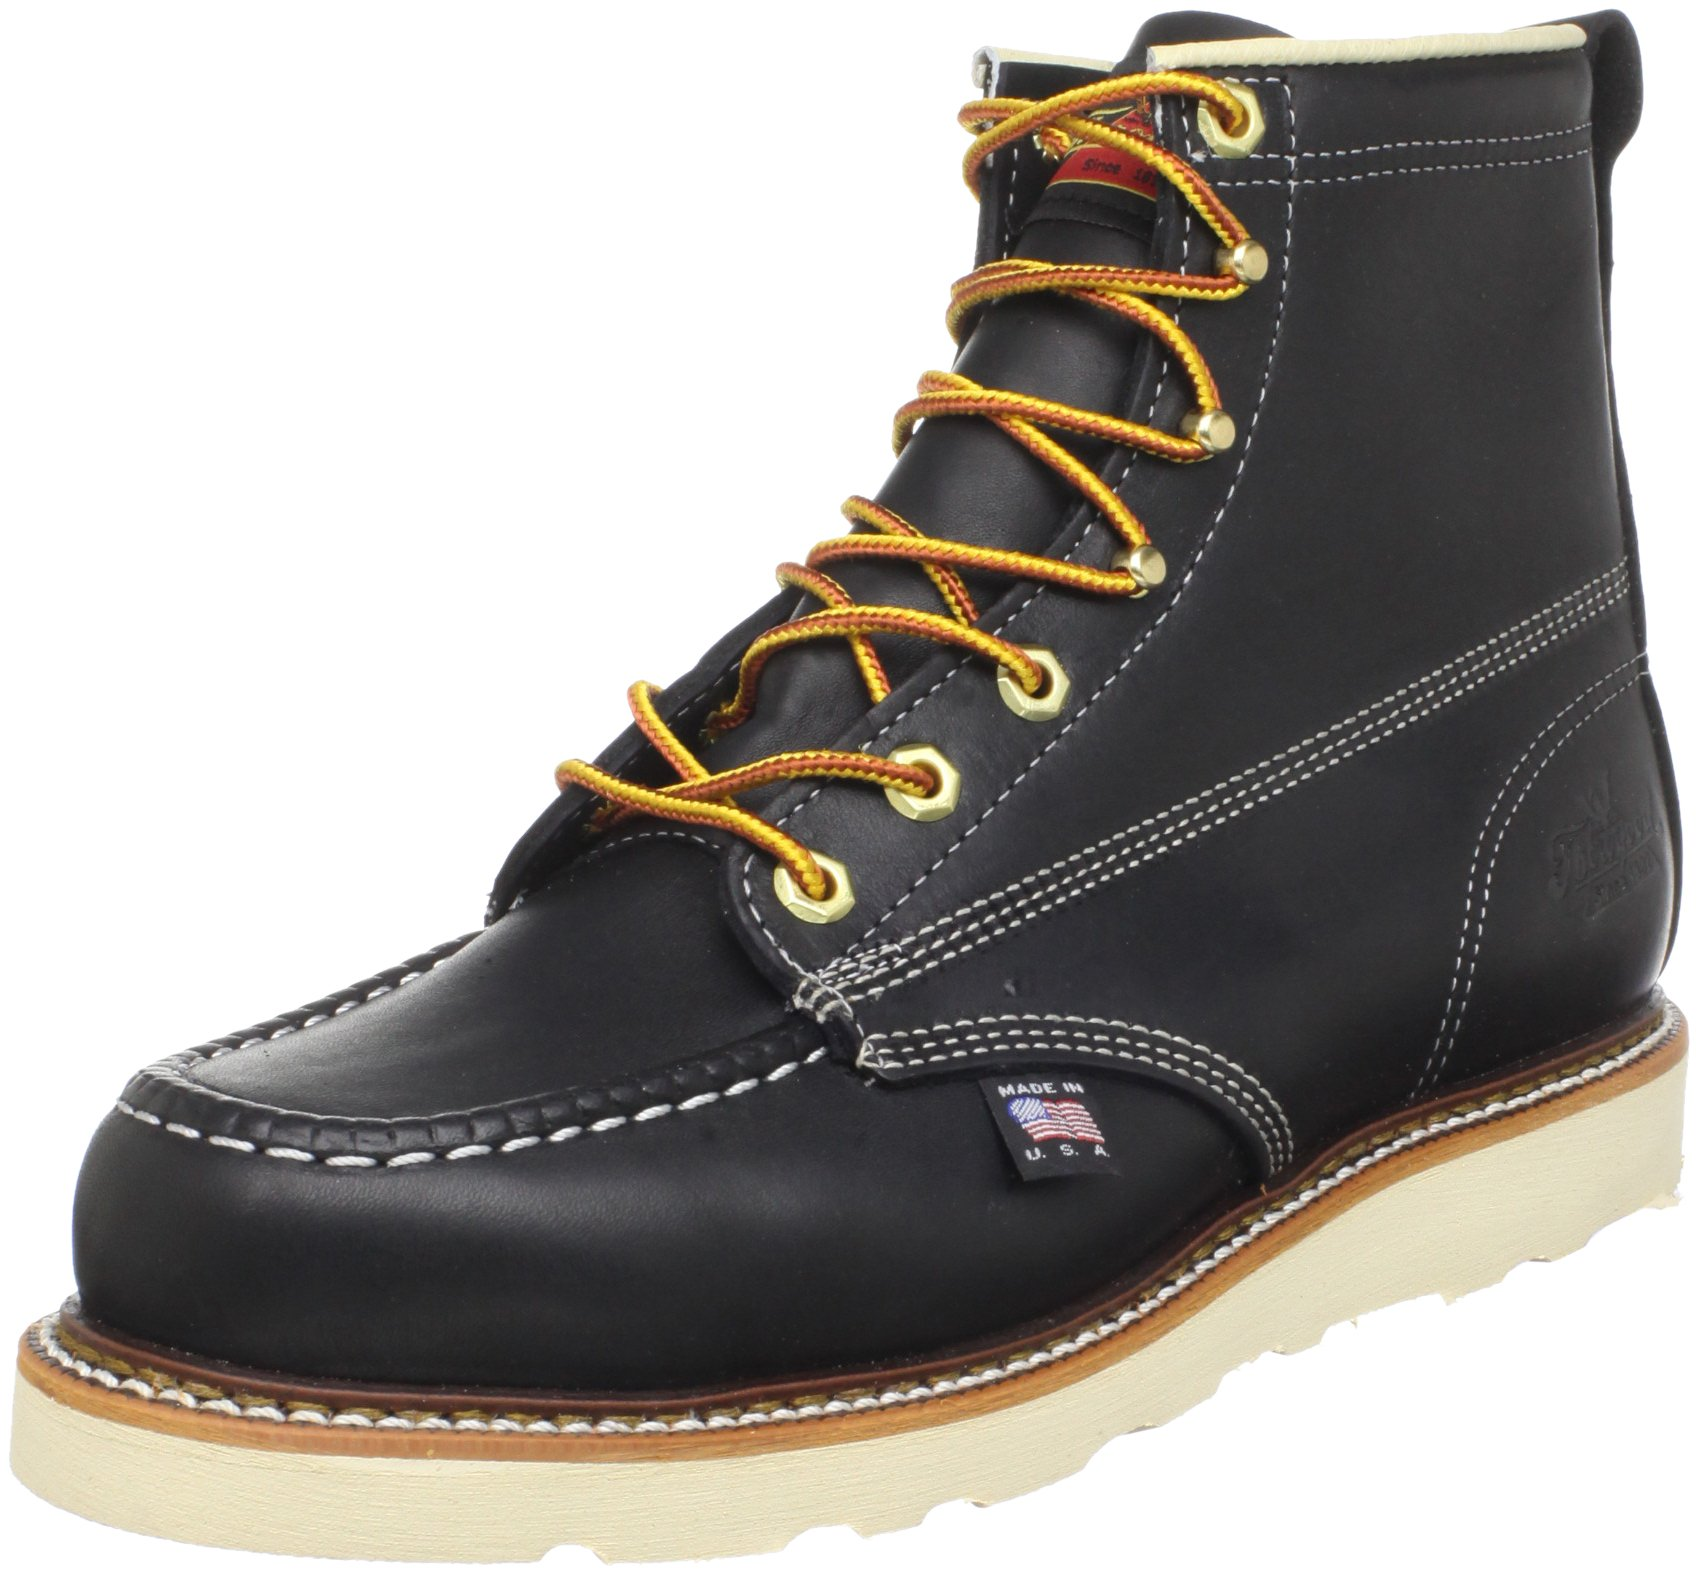 Thorogood American Heritage Boot, Black, 8 D US